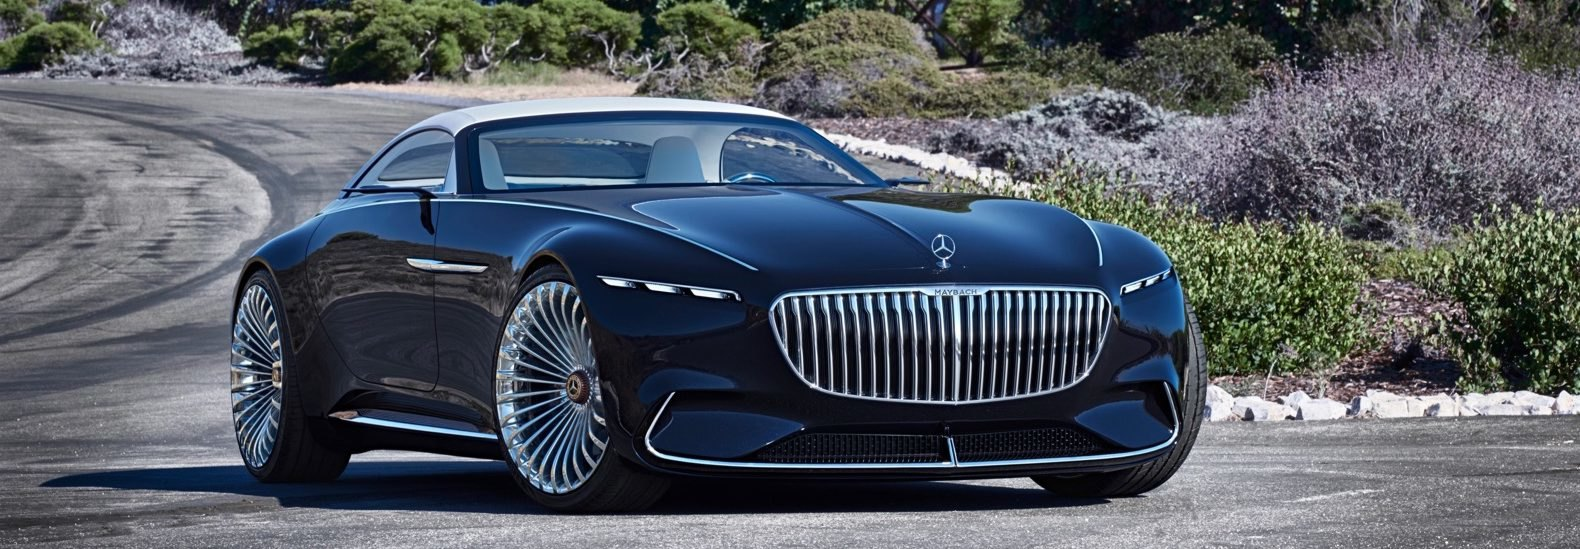 Mercedes-Benz unveils stunning art deco-inspired electric car